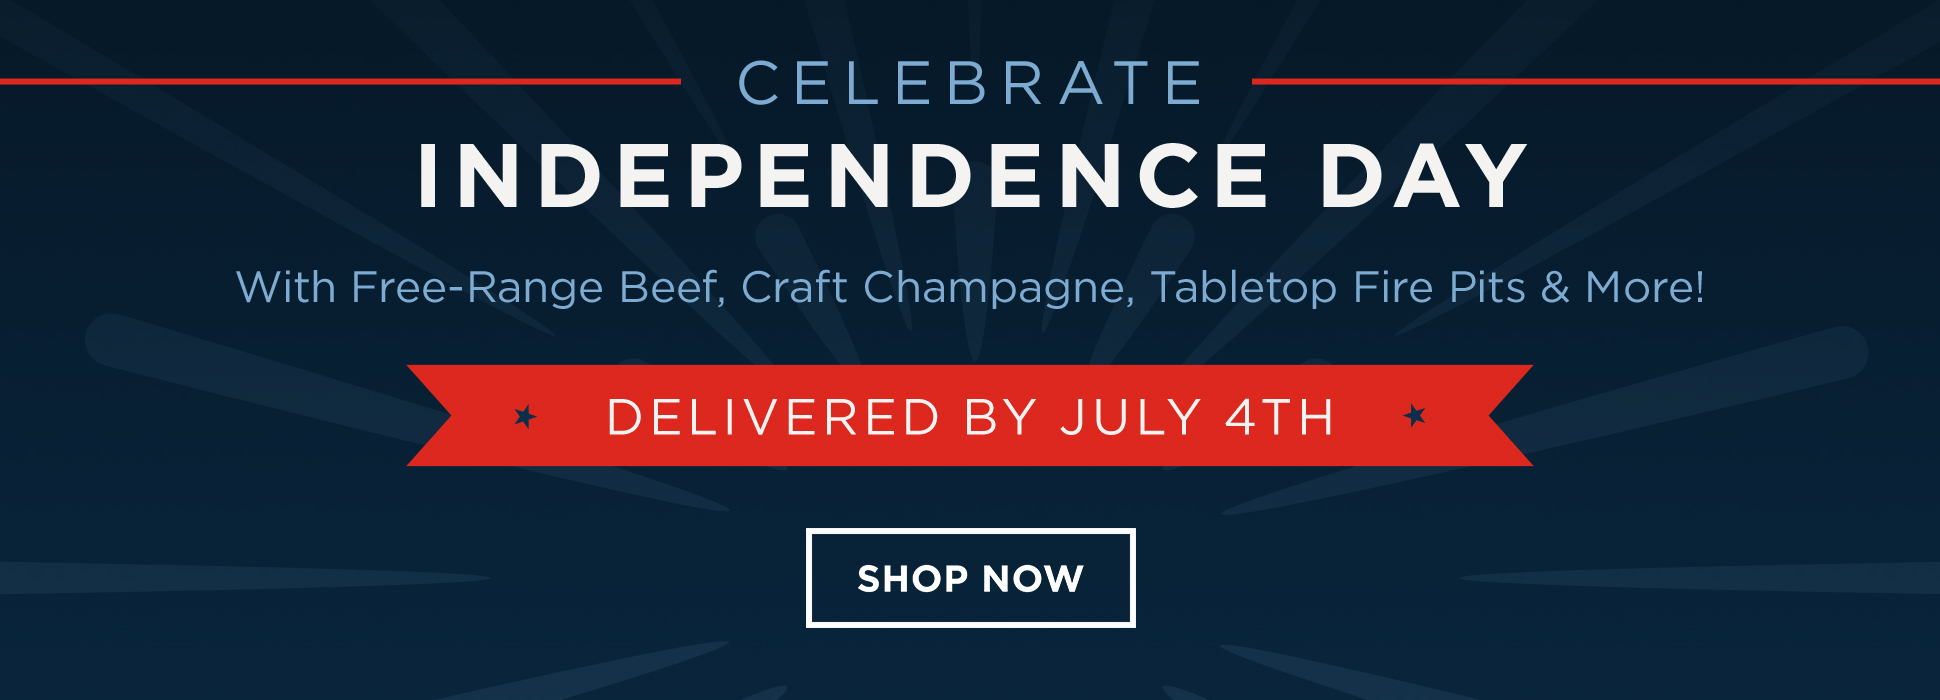 Delivered by July 4th (banners)